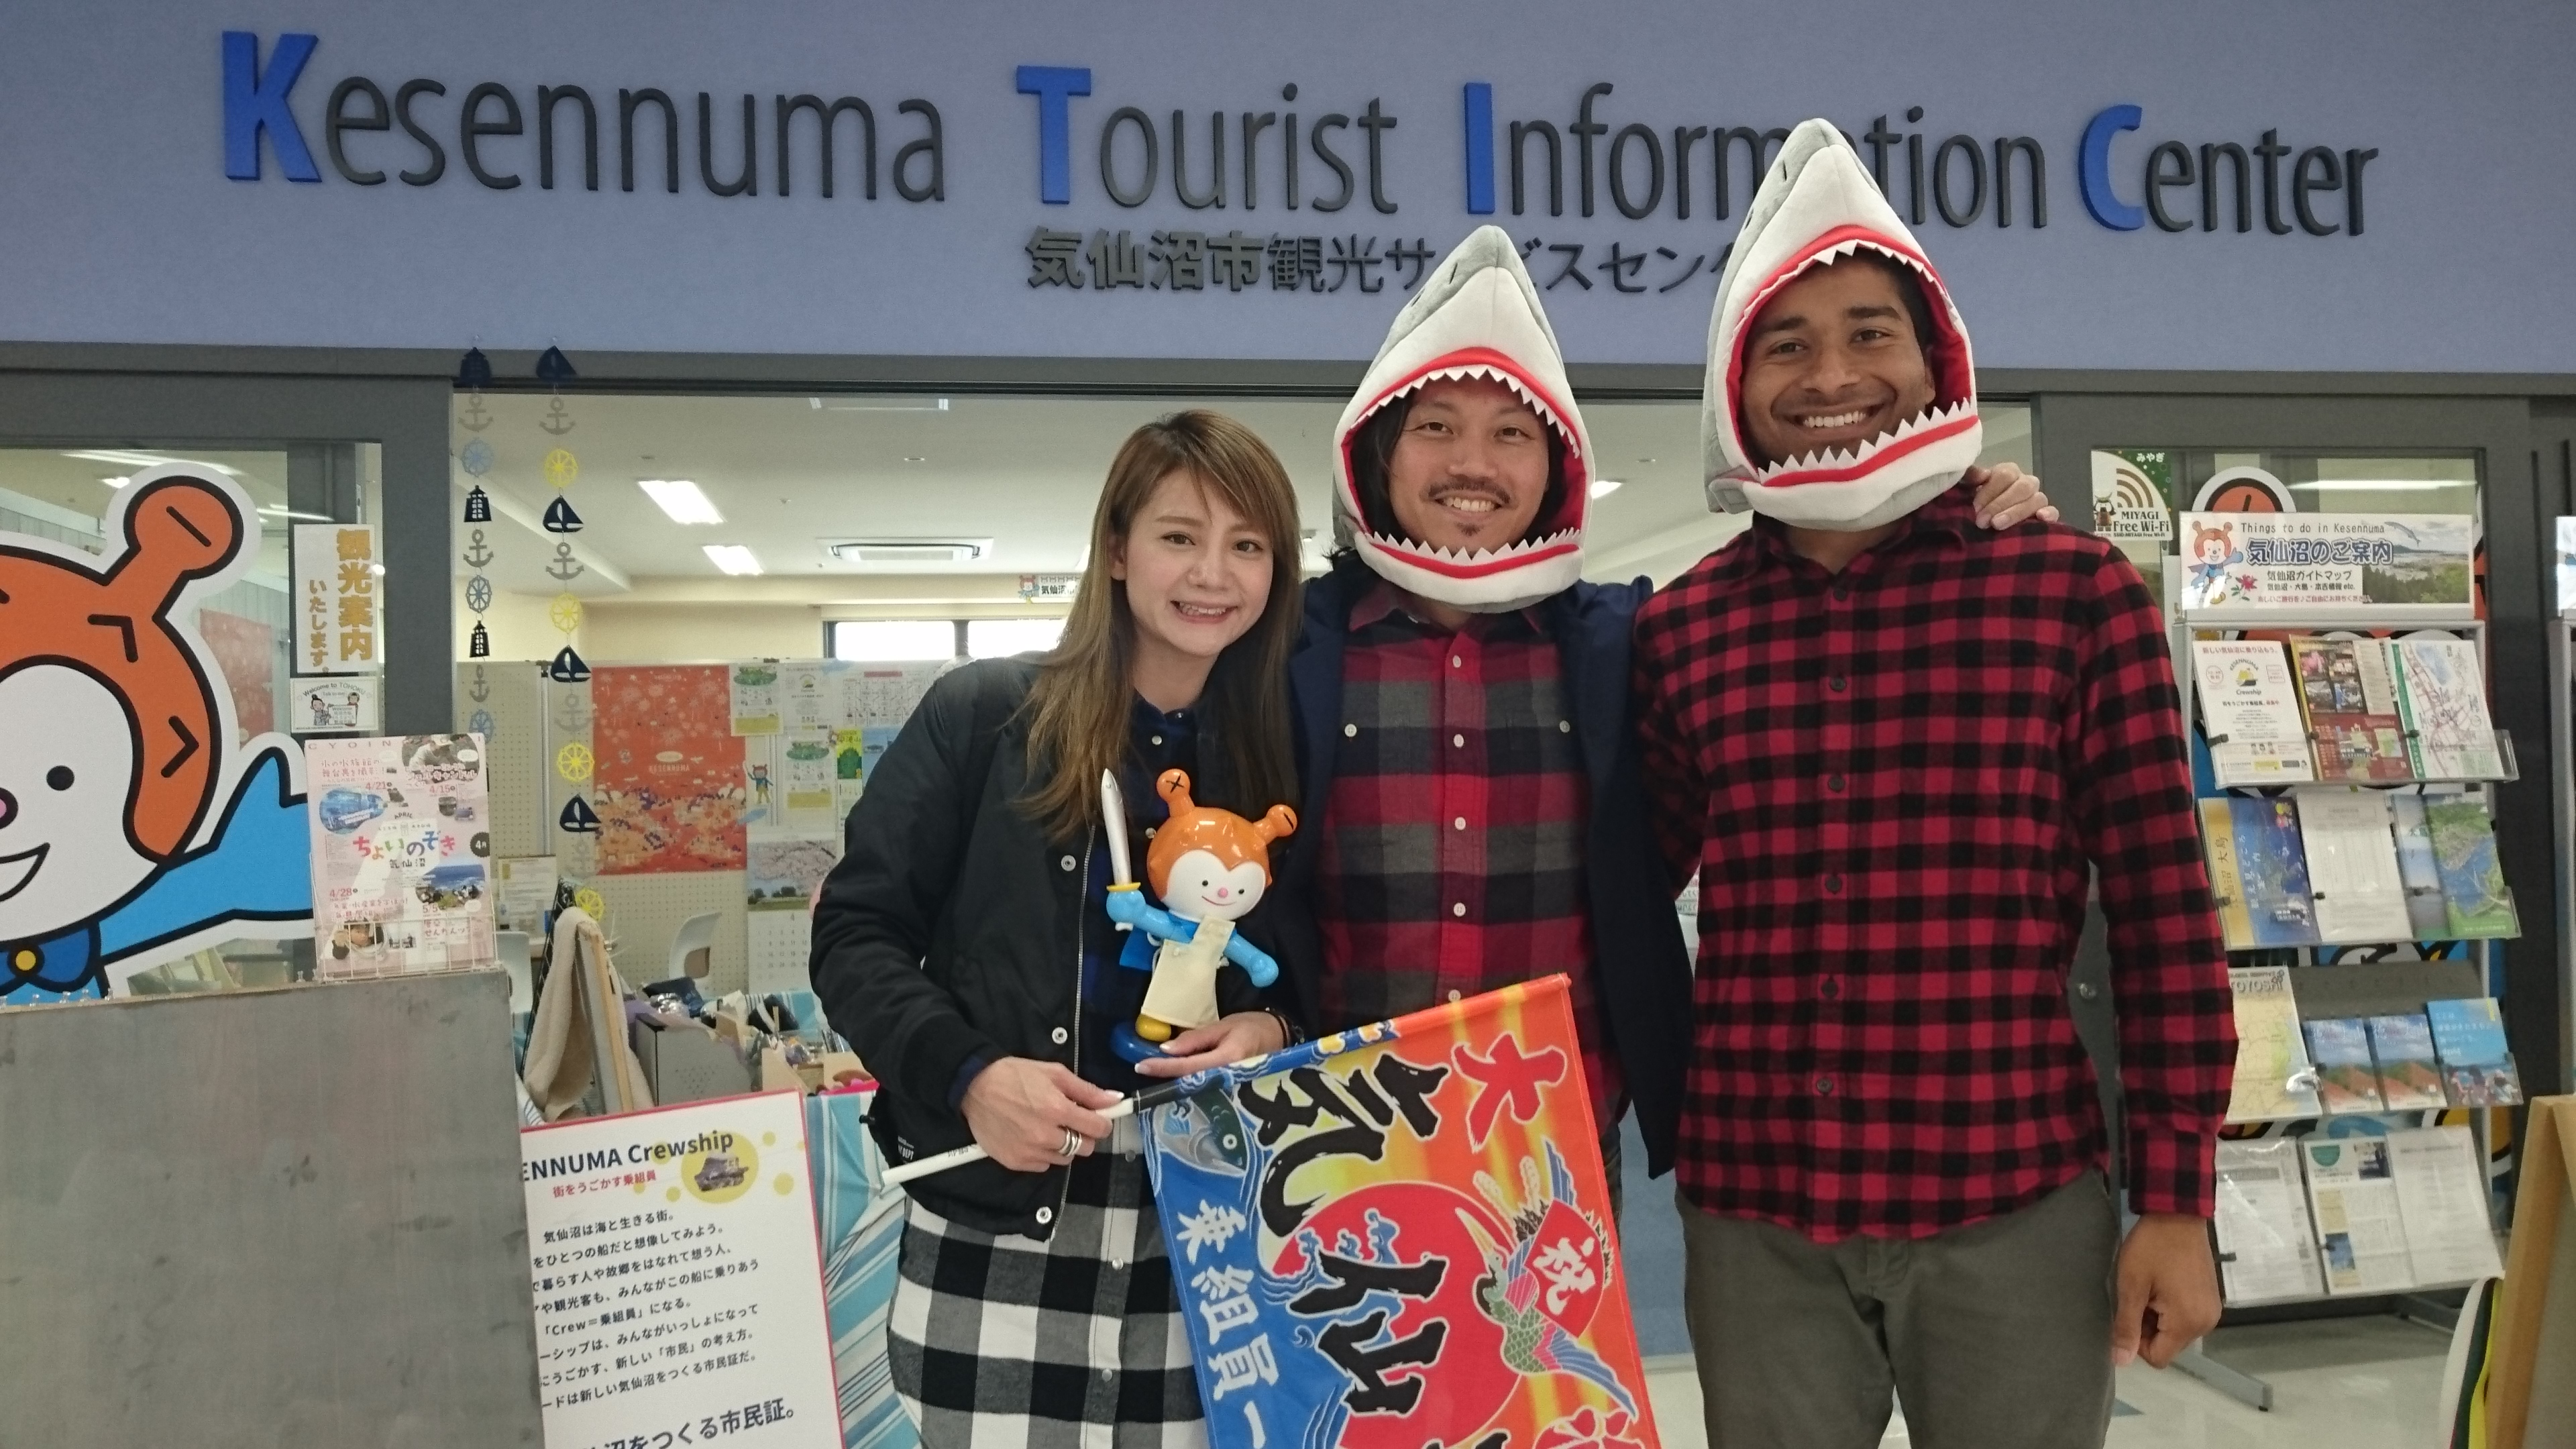 Nishant and his Singapore friends standing in front of Kesennuma Tourist Information Centre